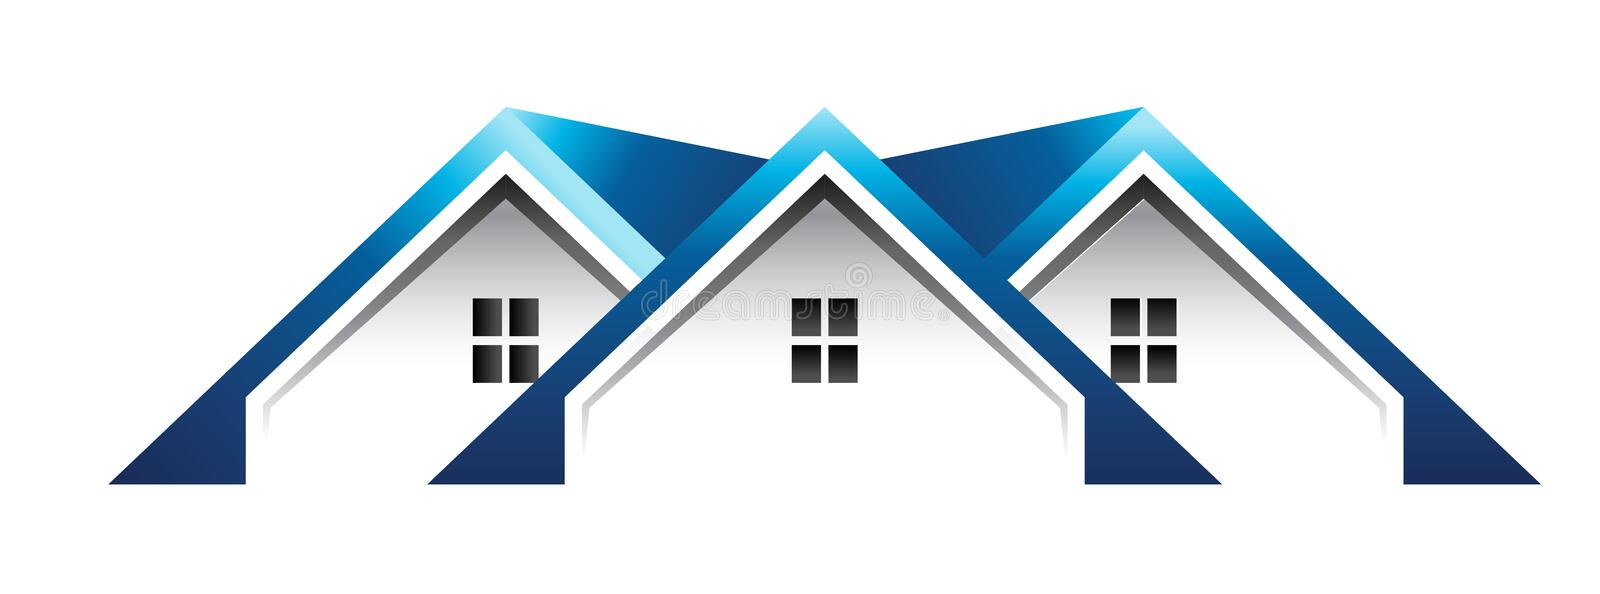 Roof houses logo. Group of three roof houses